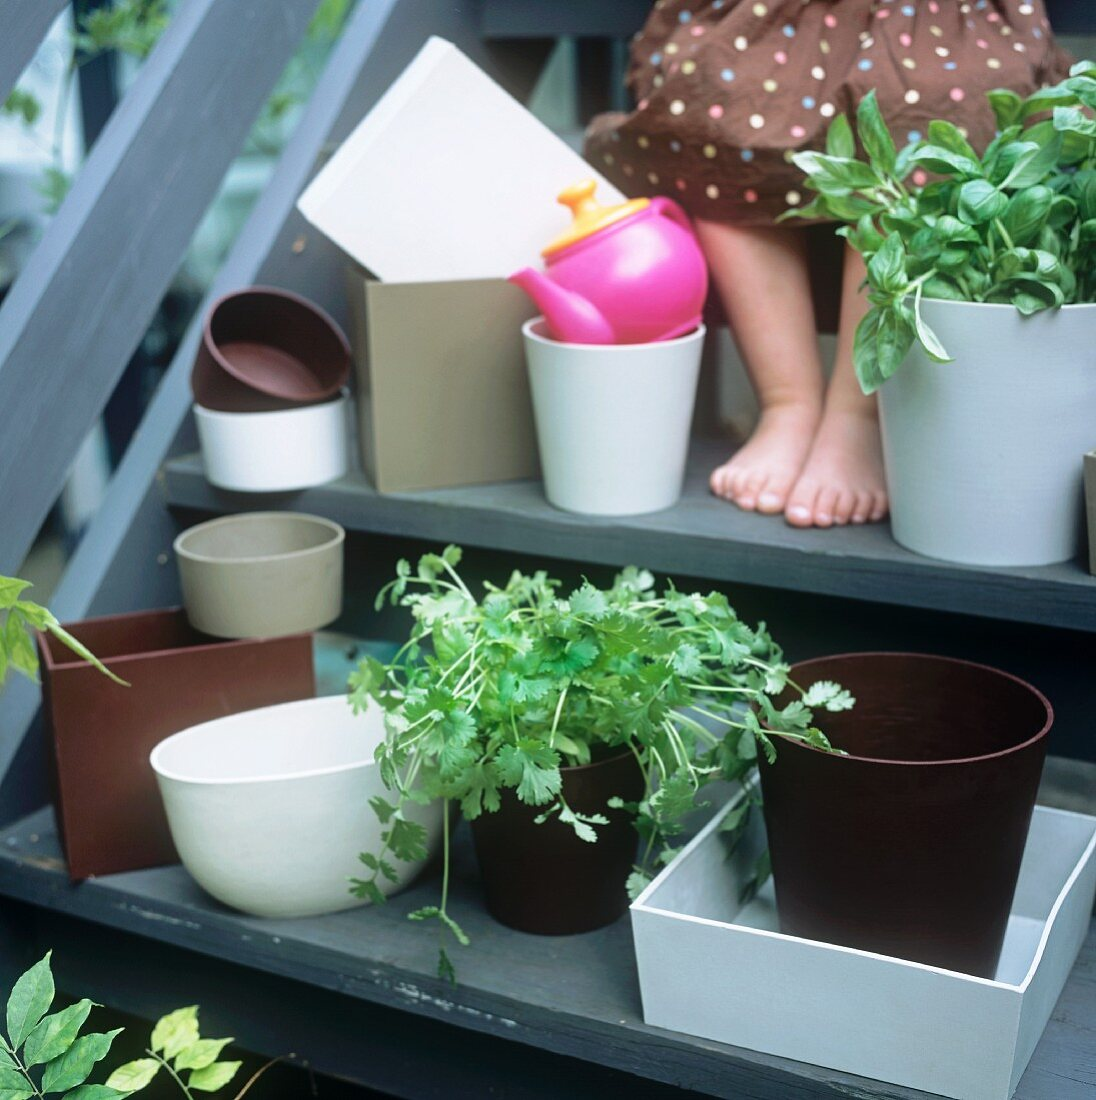 A girl's feet on a flight of stairs surrounded by pots of herbs